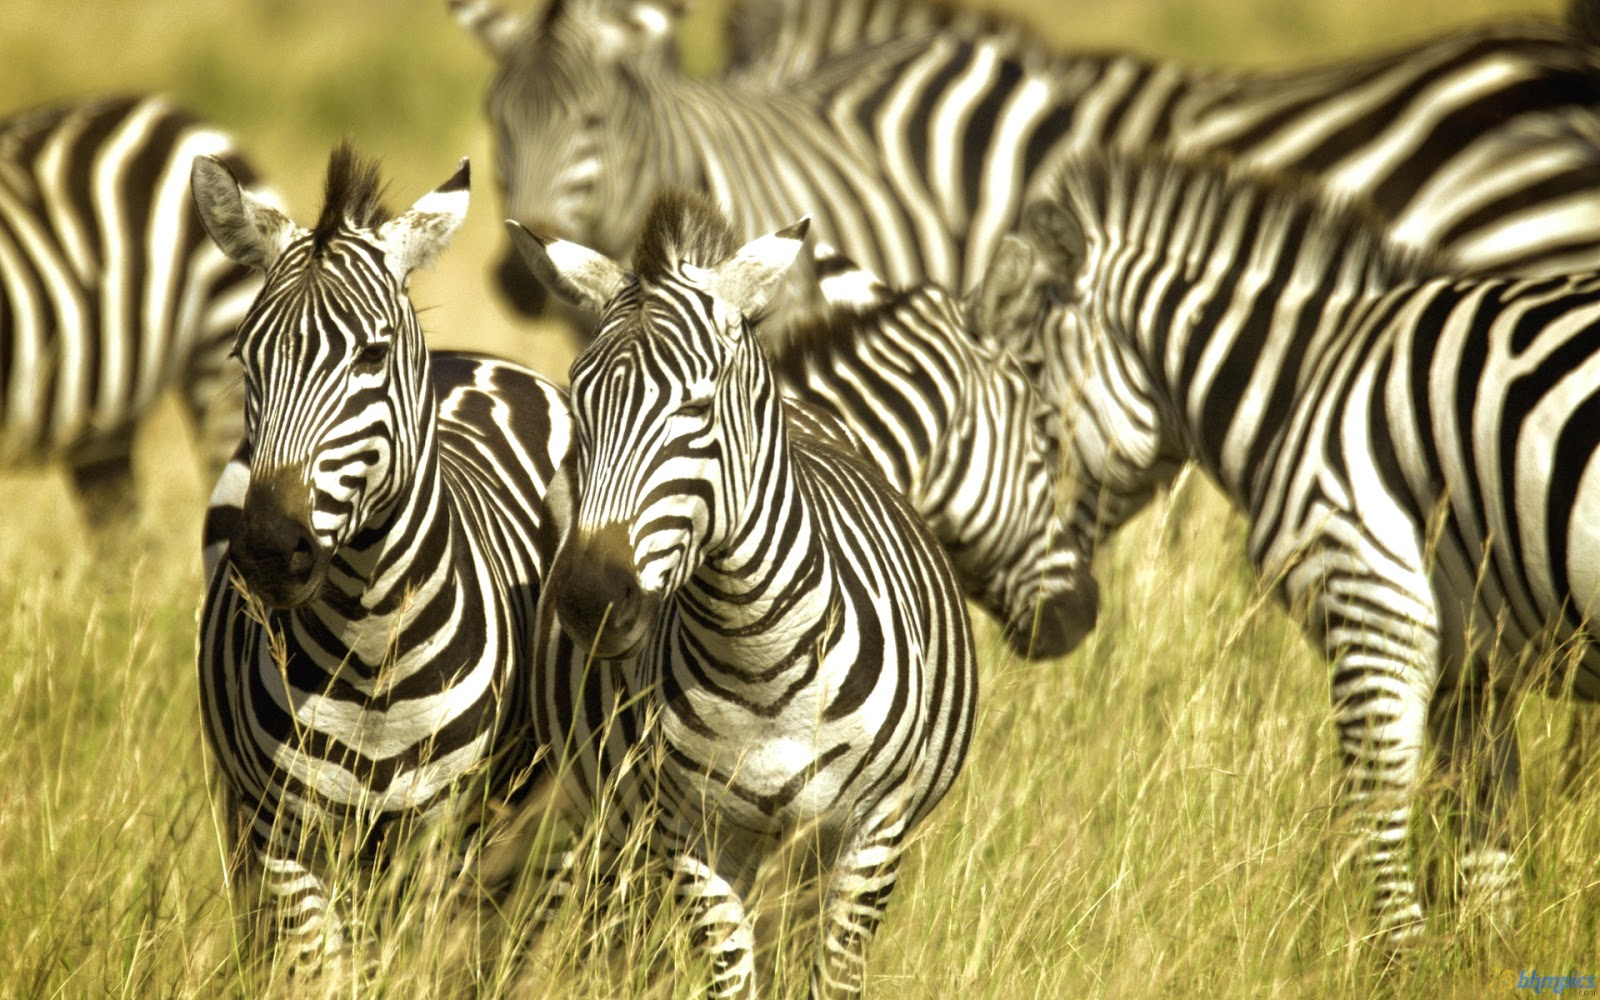 Cute Funny Babies Hd Wallpapers Top 20 Most Cute And Dashing Zebra Wallpapers In Hd